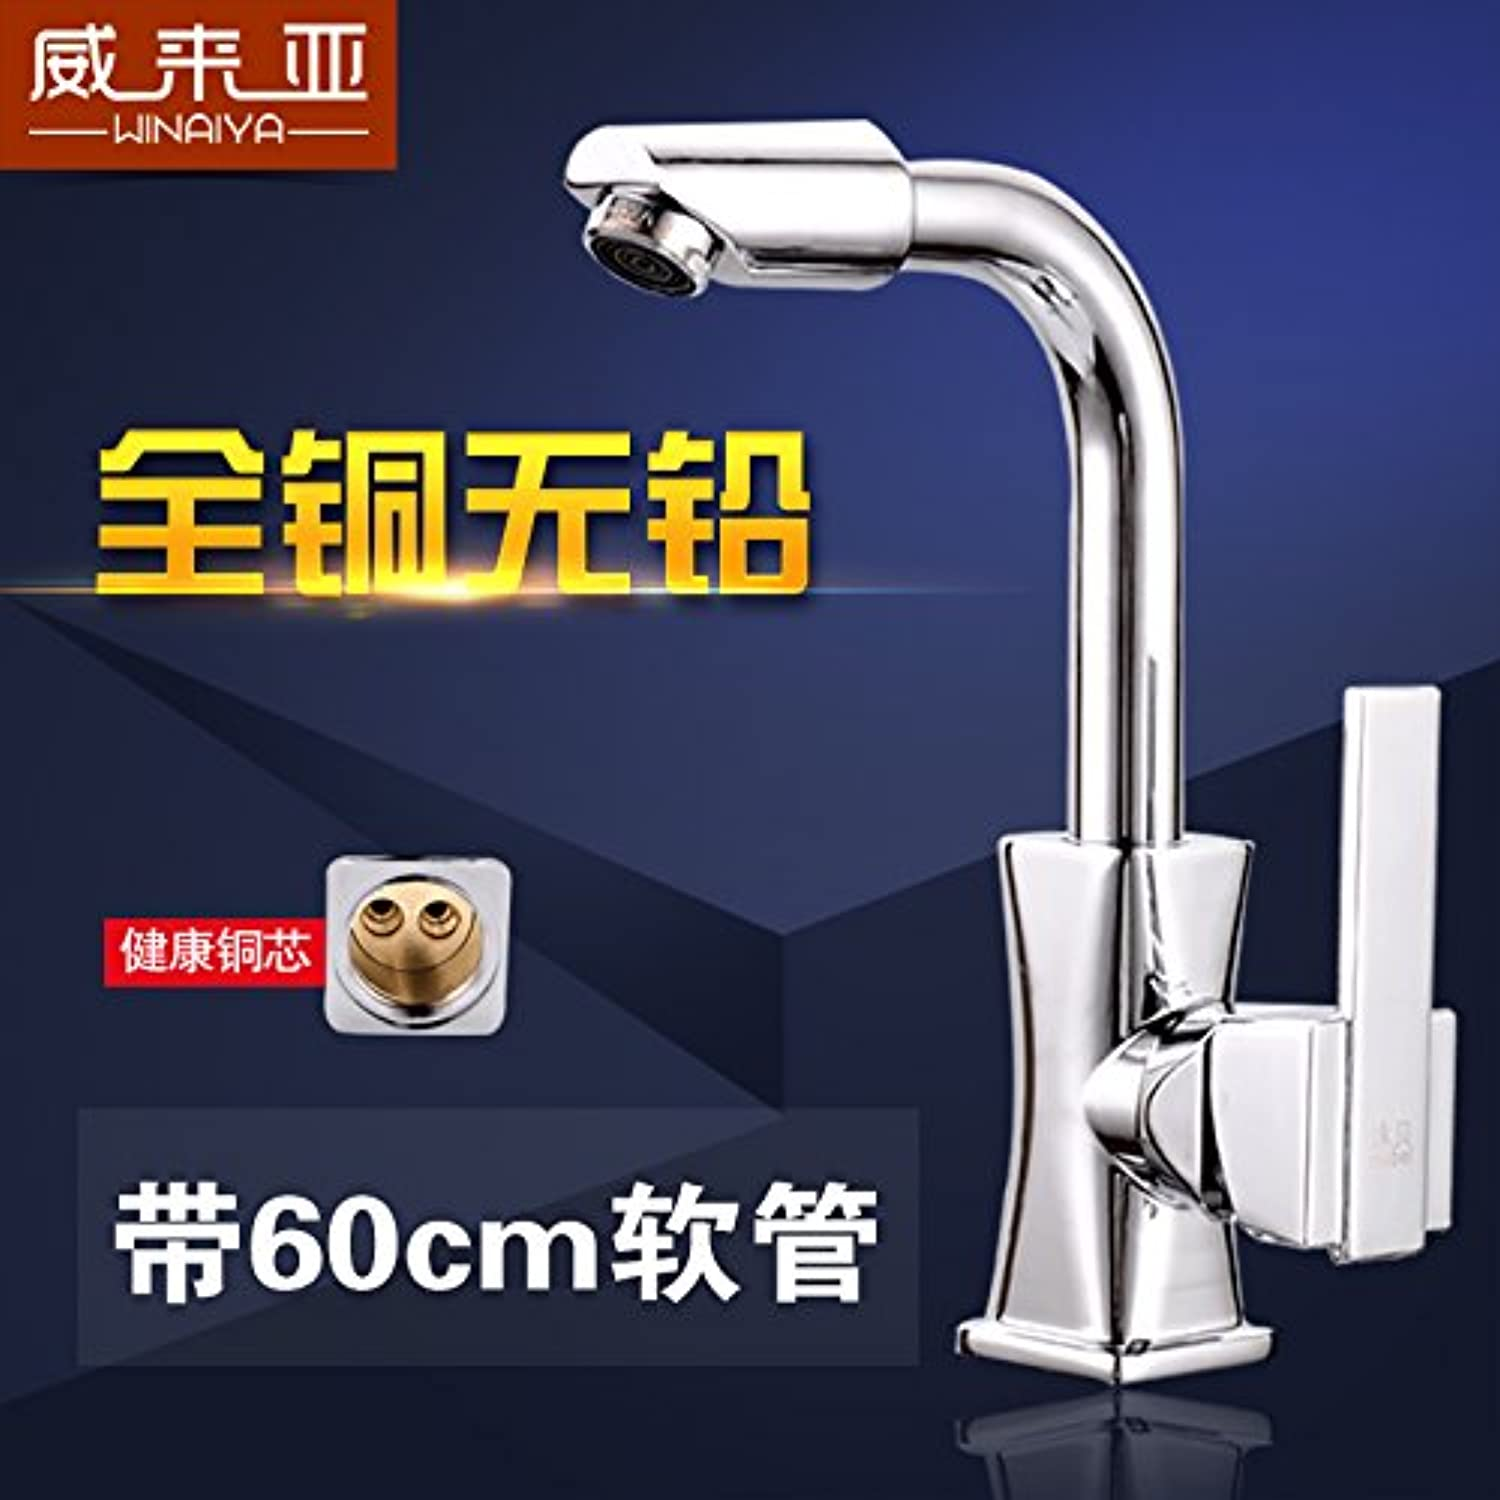 Lpophy Bathroom Sink Mixer Taps Faucet Bath Waterfall Cold and Hot Water Tap for Washroom Bathroom and Kitchen Copper Hot and Cold A